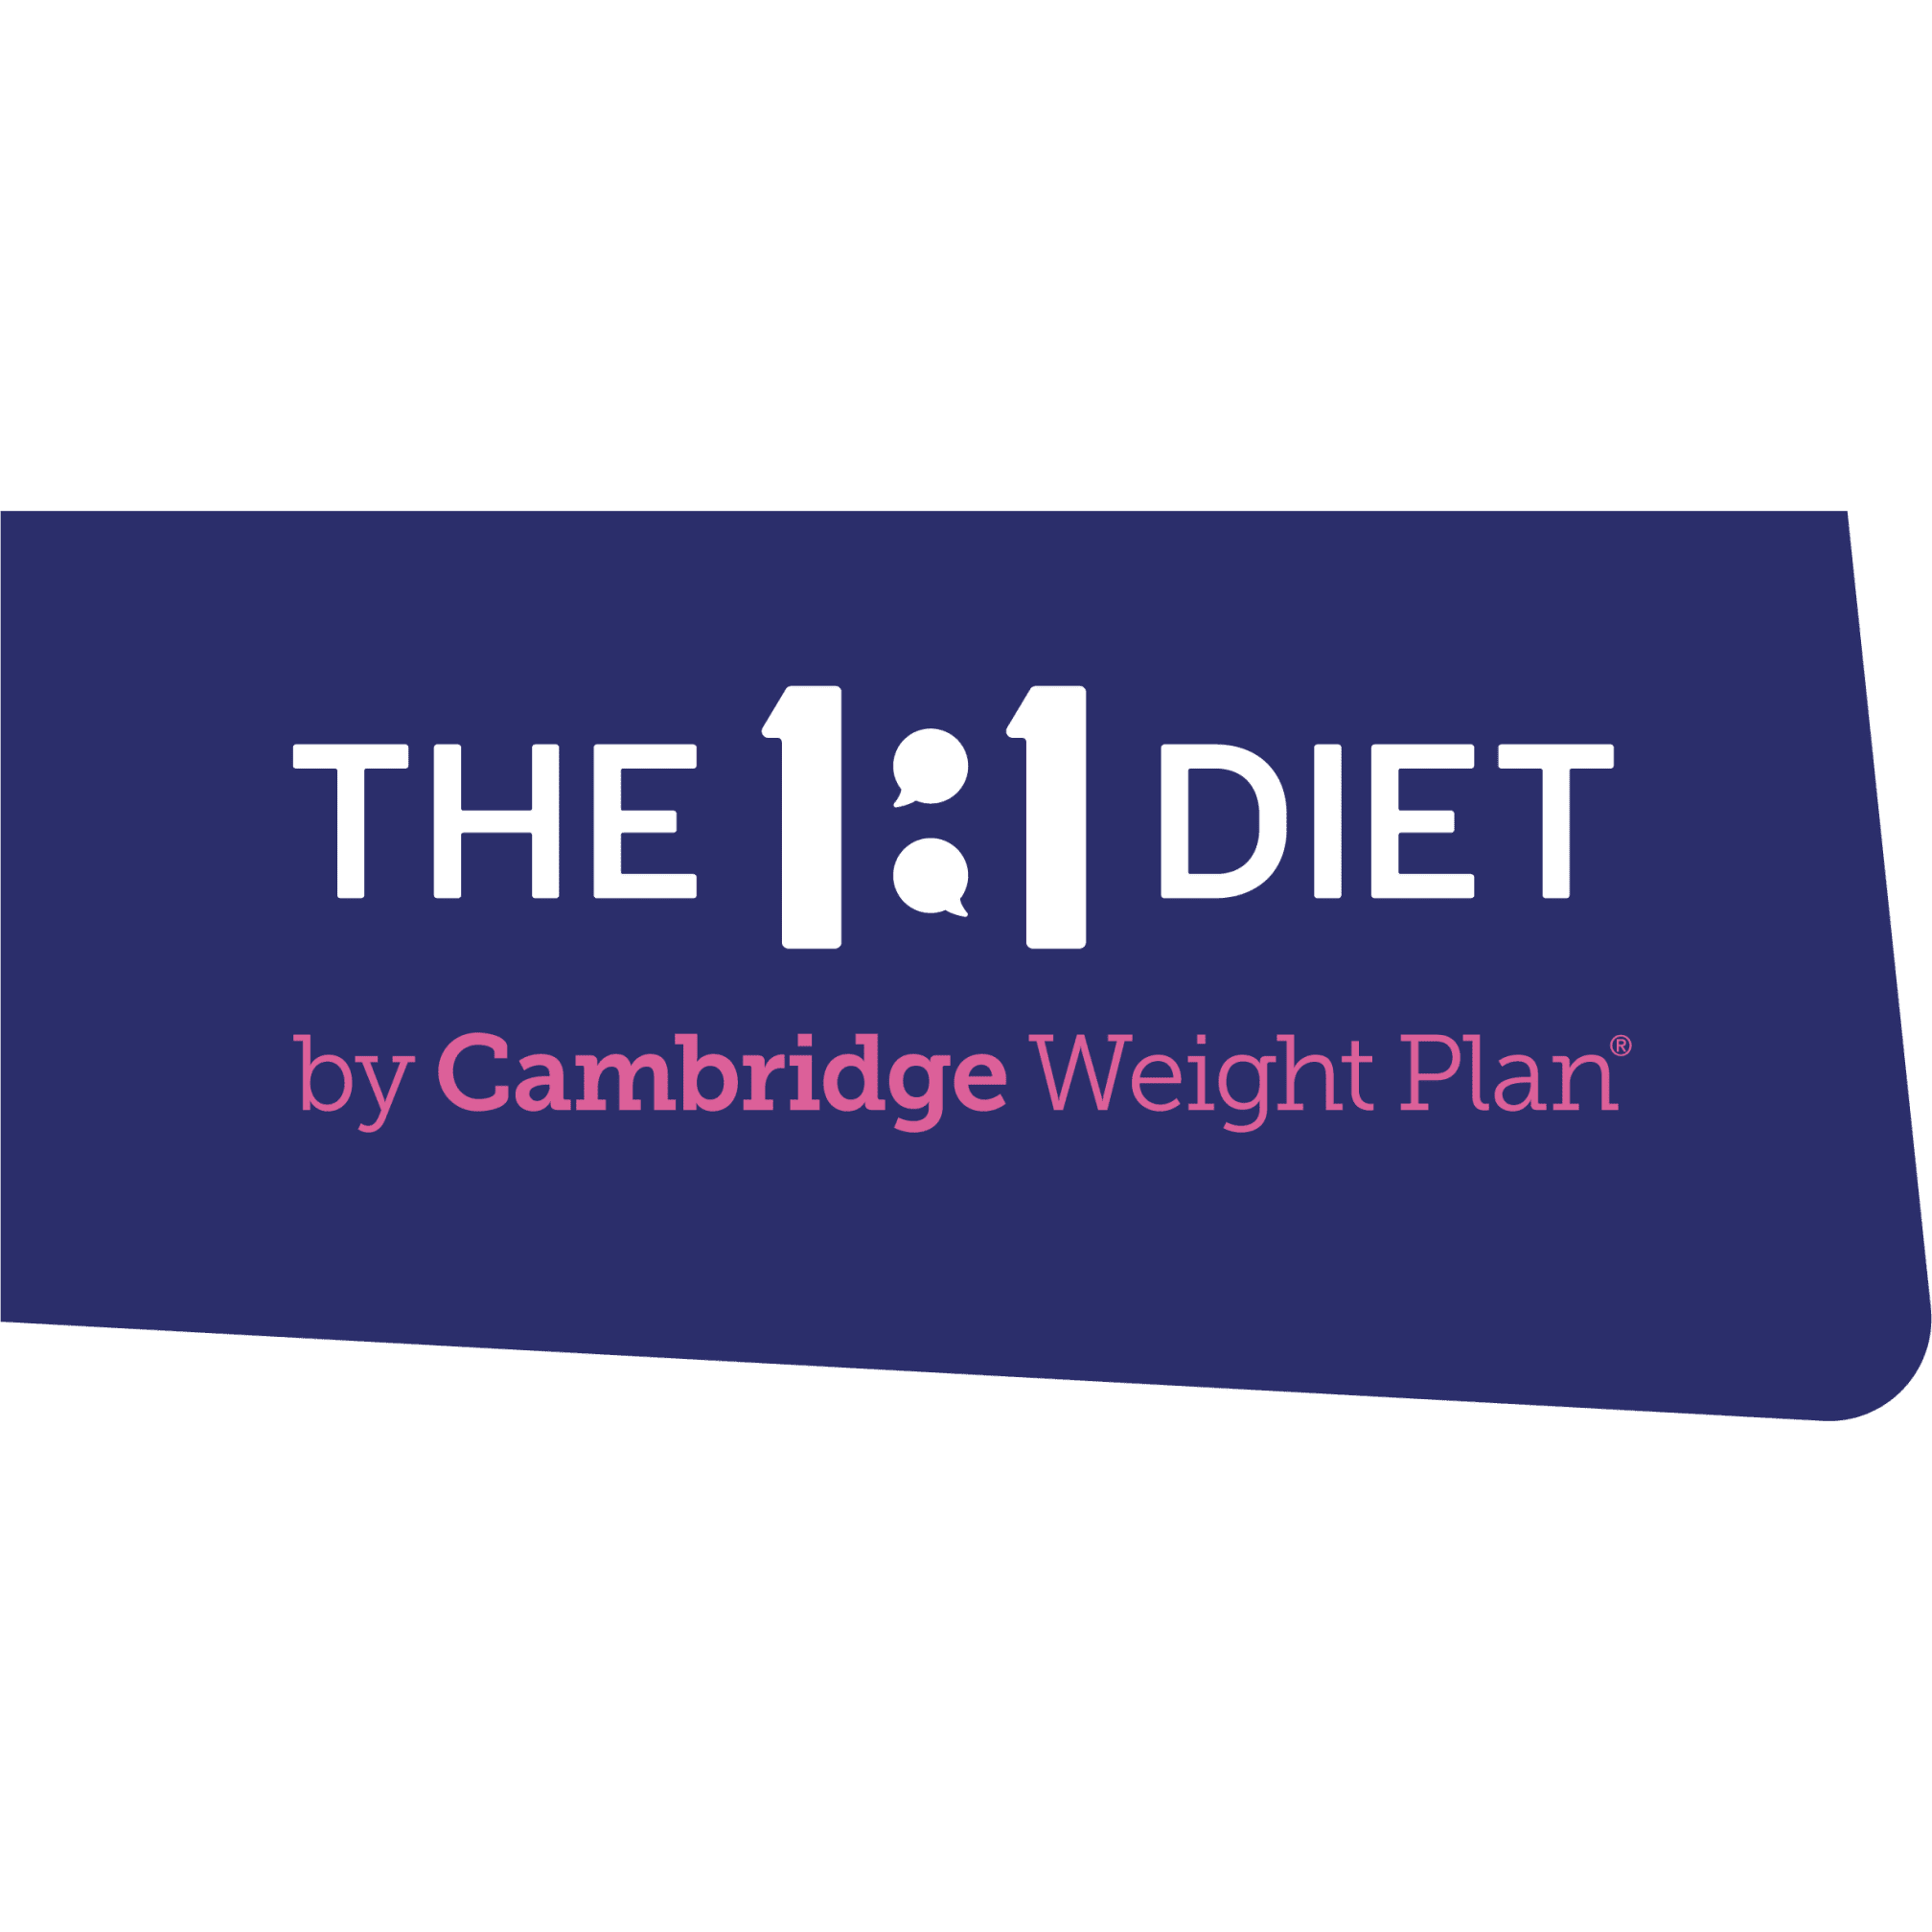 The 1:1 Diet by Cambridge Weight Plan - Dudley, West Midlands  - 07711 961185 | ShowMeLocal.com